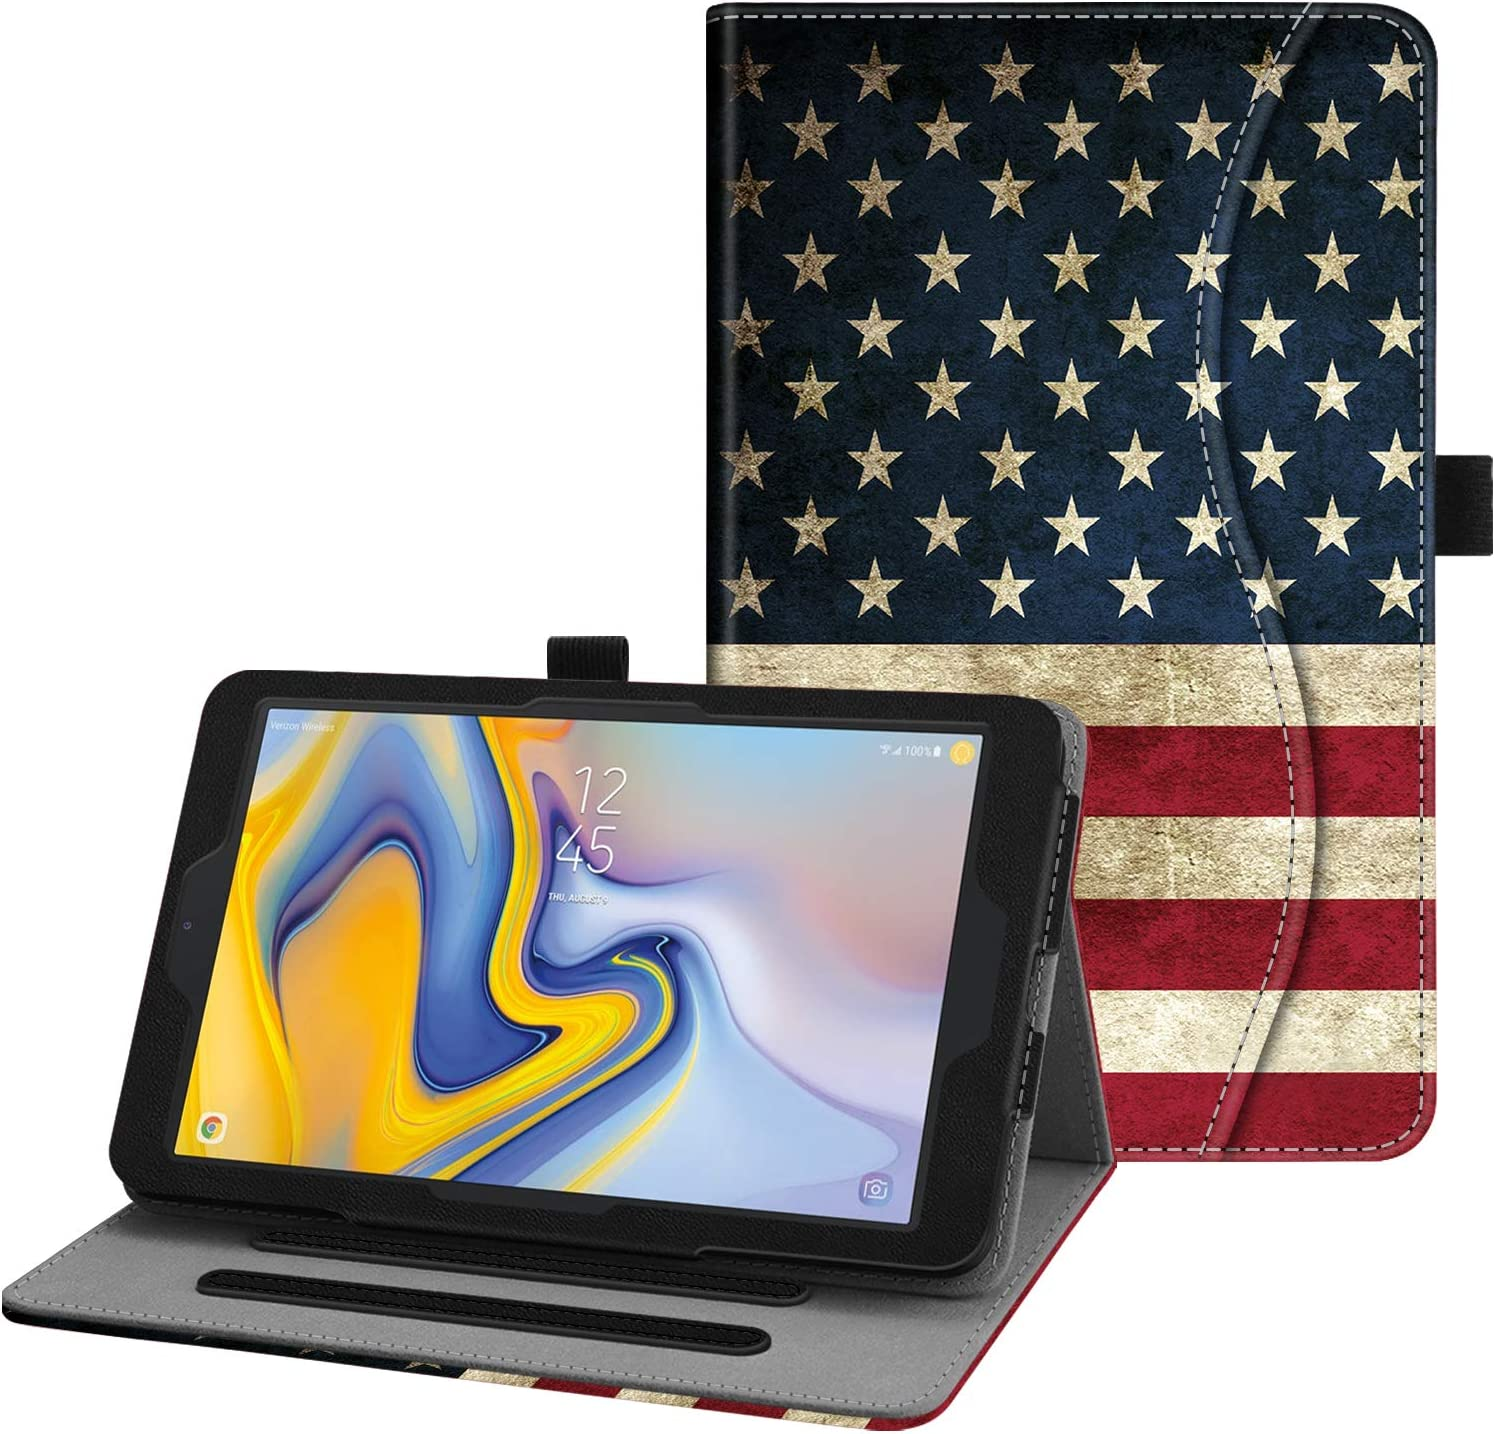 Fintie Case for Samsung Galaxy Tab A 8.0 2018 Model SM-T387 Verizon/Sprint/T-Mobile/AT&T, Multi-Angle Viewing Stand Cover with Packet, US Flag